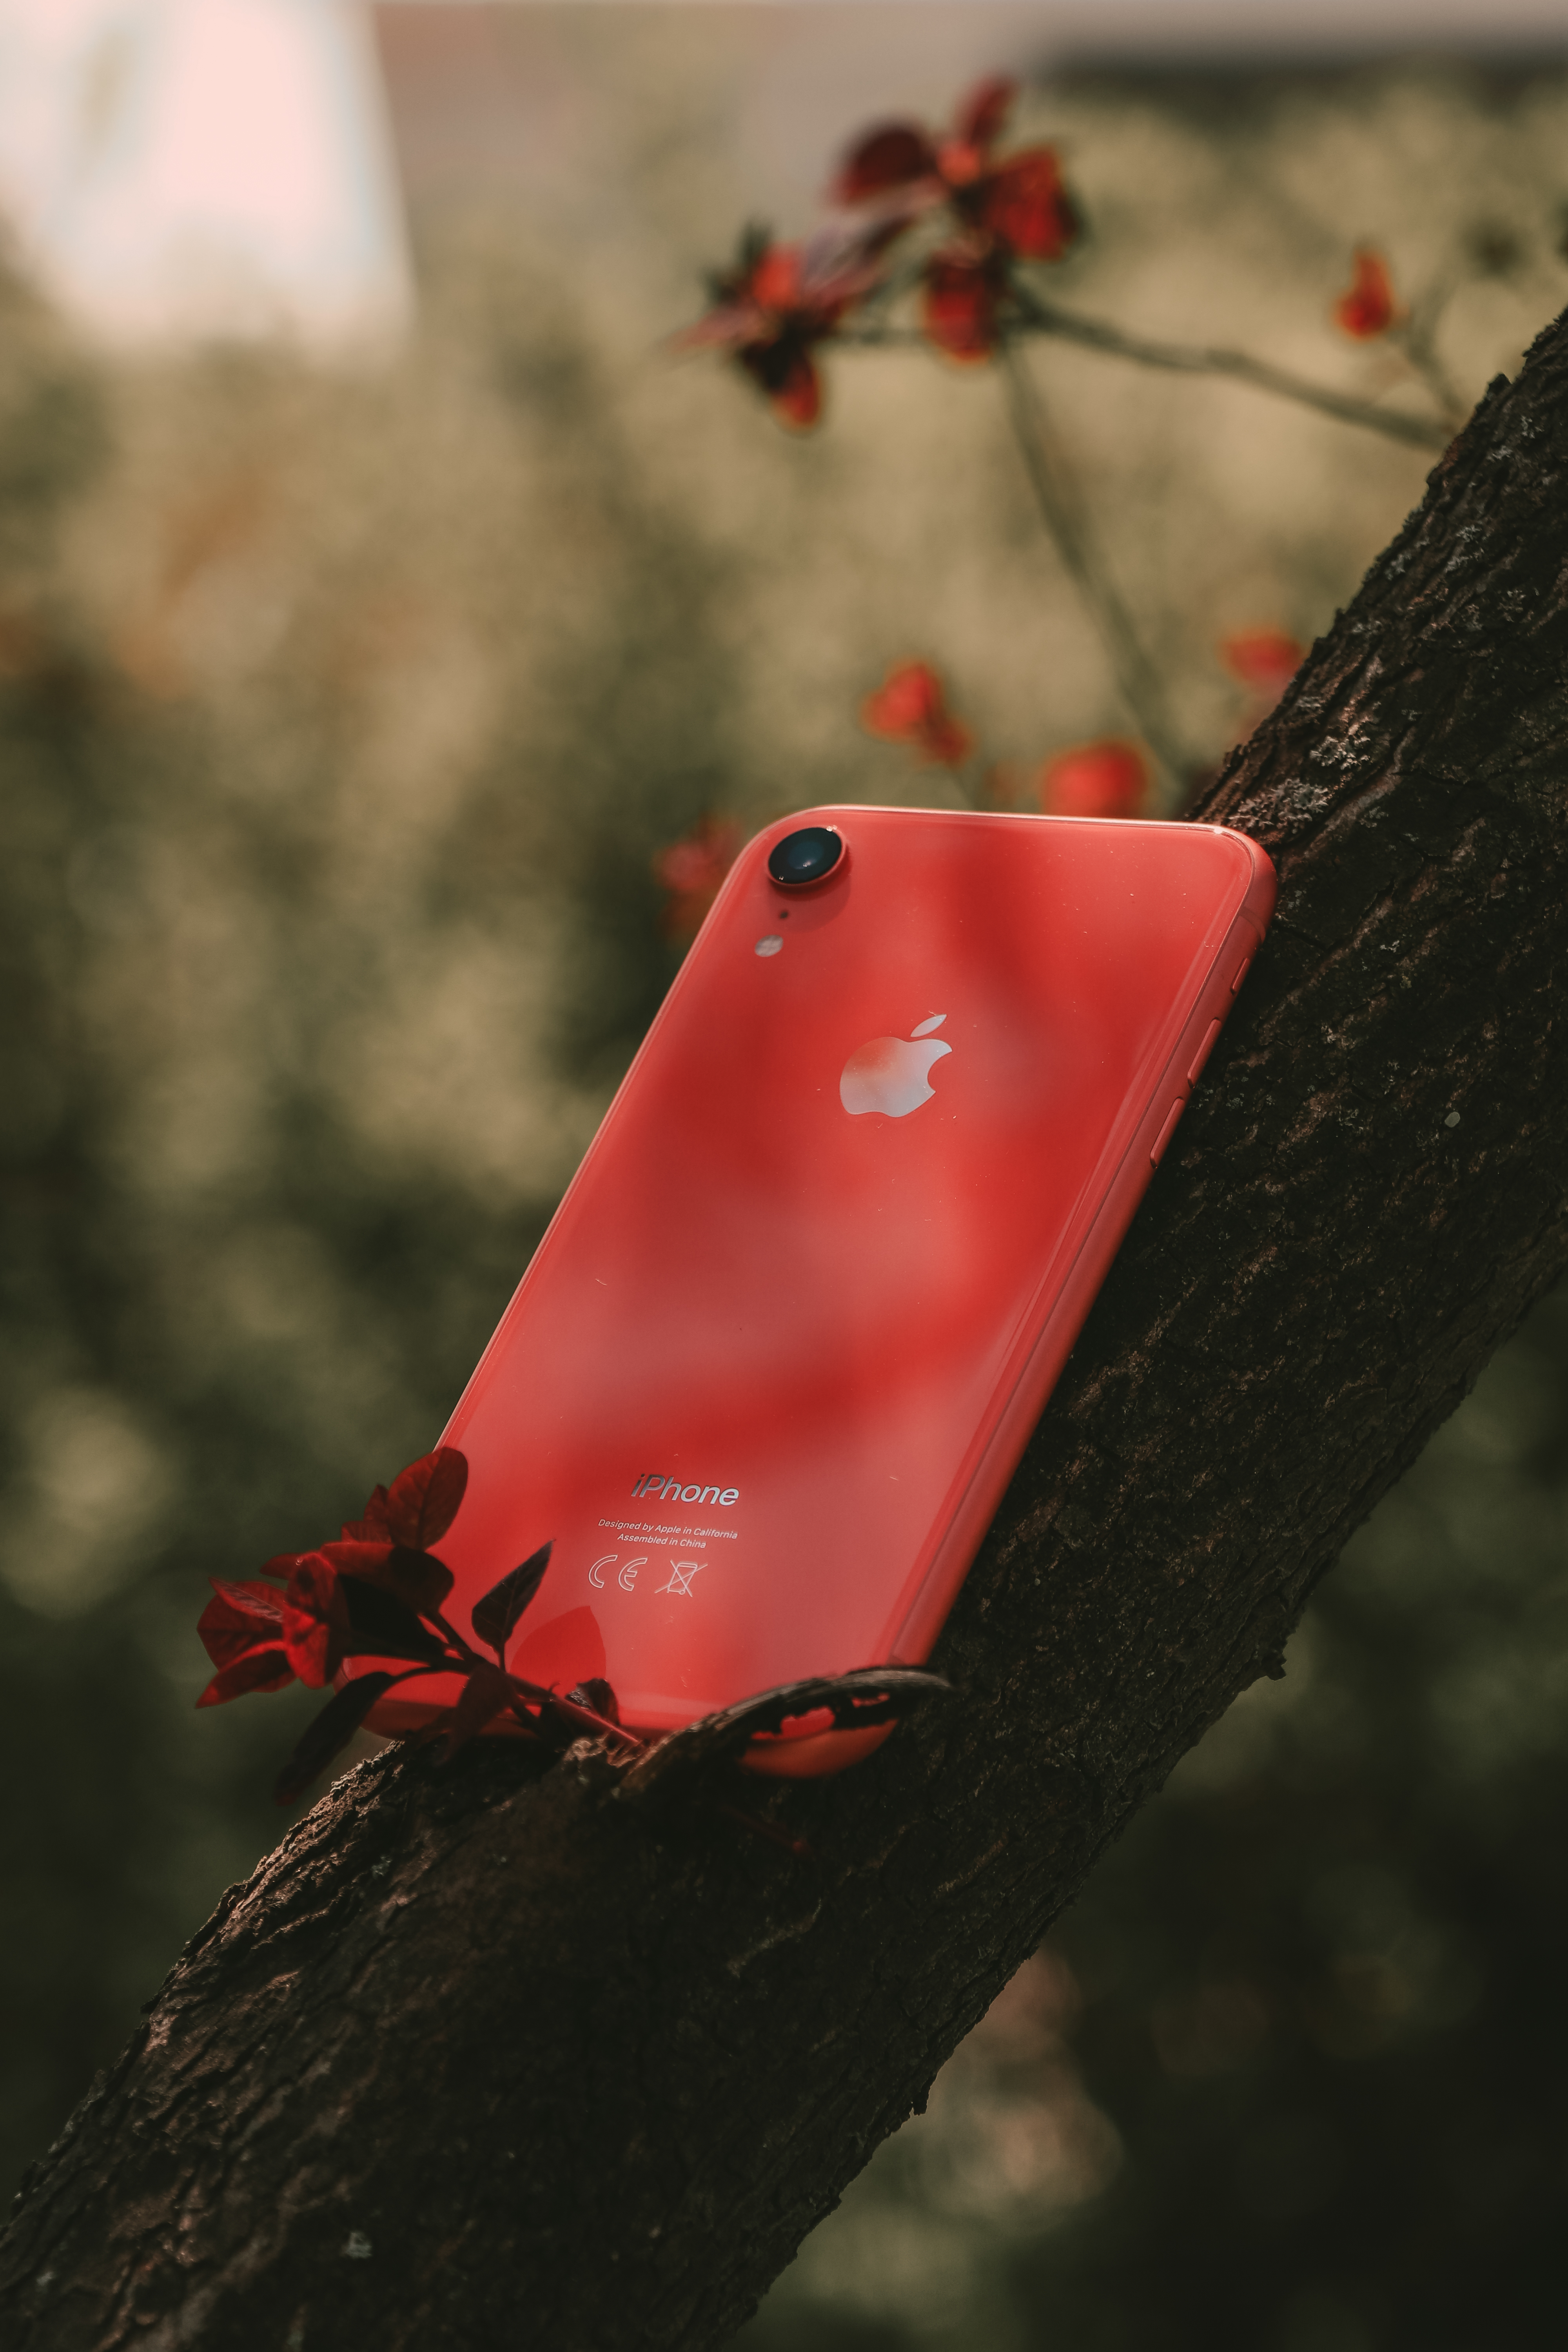 Product Red Iphone 7 on Tree